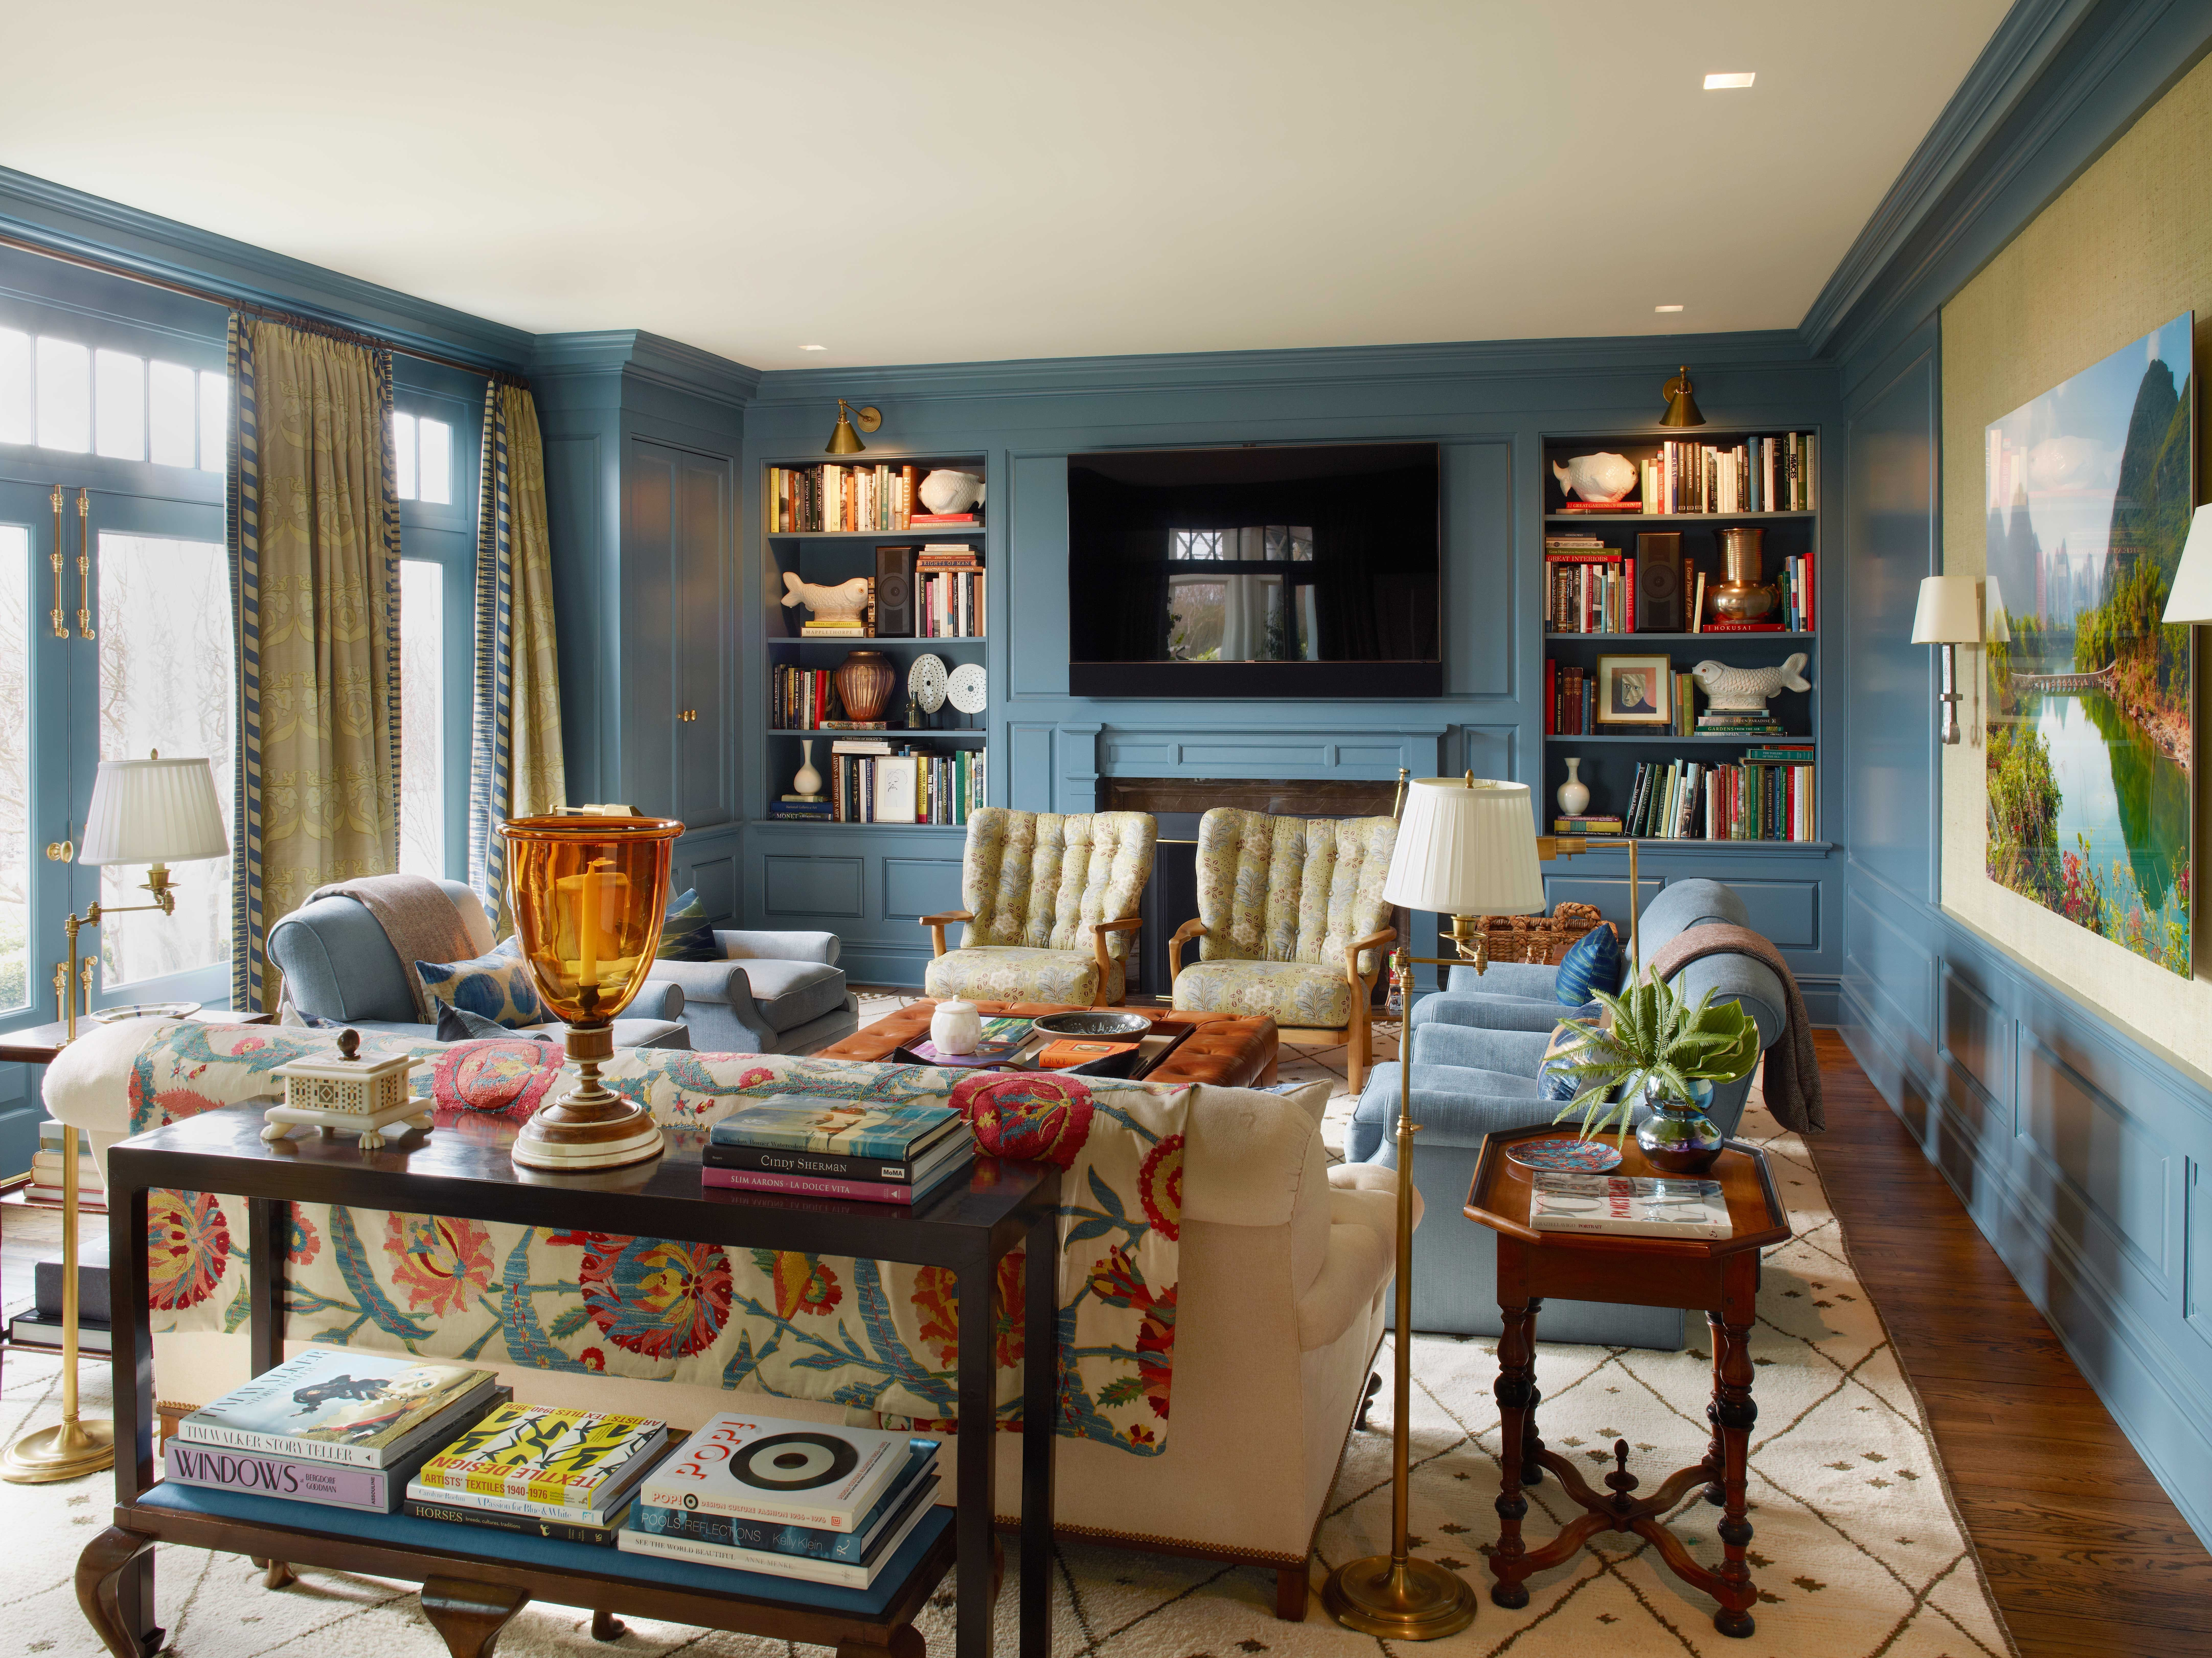 Living Room Ideas - Bunny Williams Design Tips